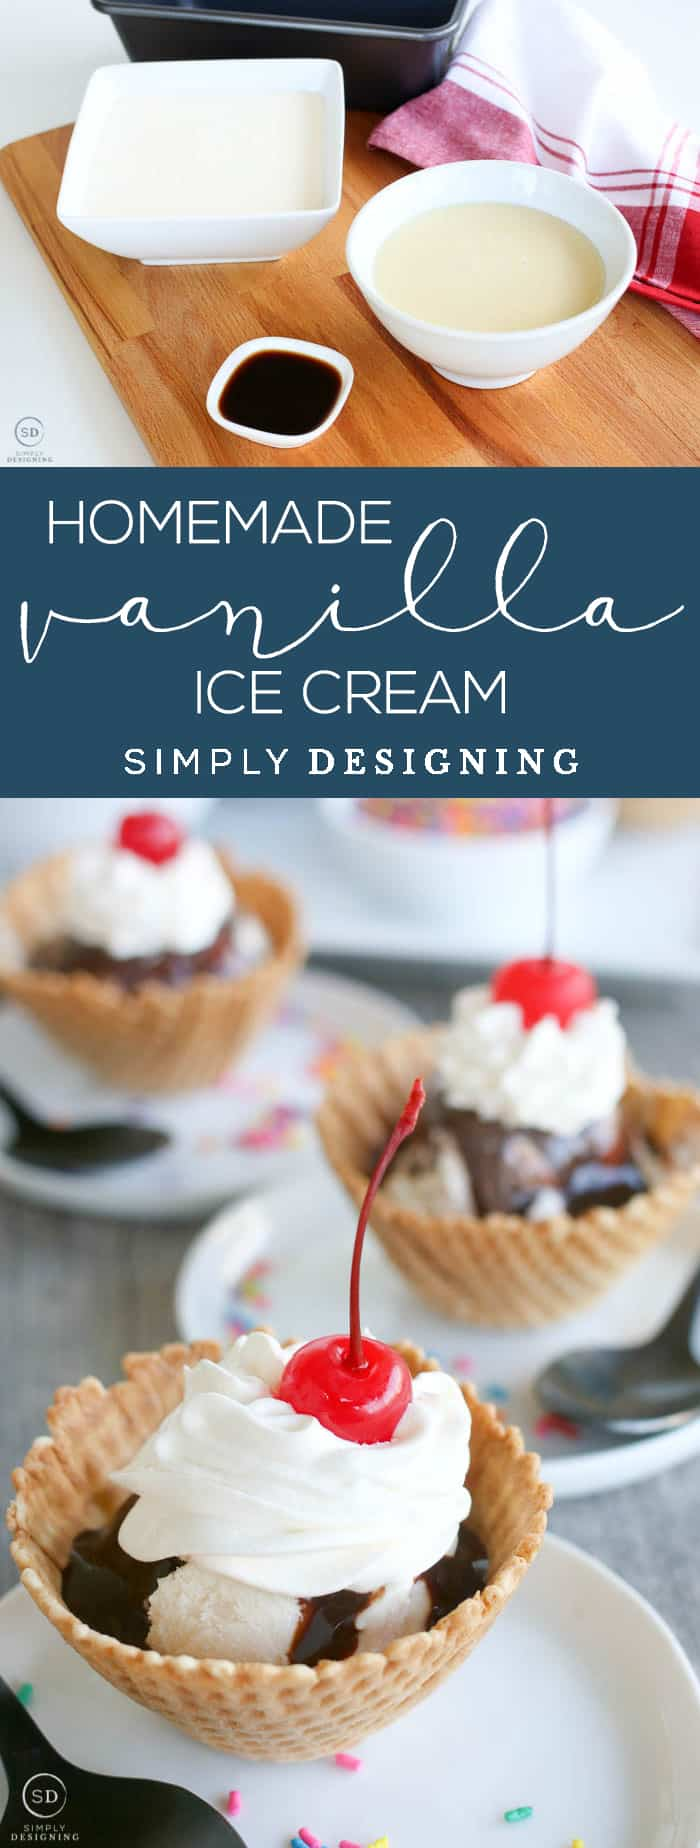 Homemade Vanilla Ice Cream - There's never a bad time for homemade ice cream, right?! This no churn ice cream recipe is super simple, takes just three ingredients, and is quite possibly the most delicious homemade vanilla ice cream I've ever tasted.